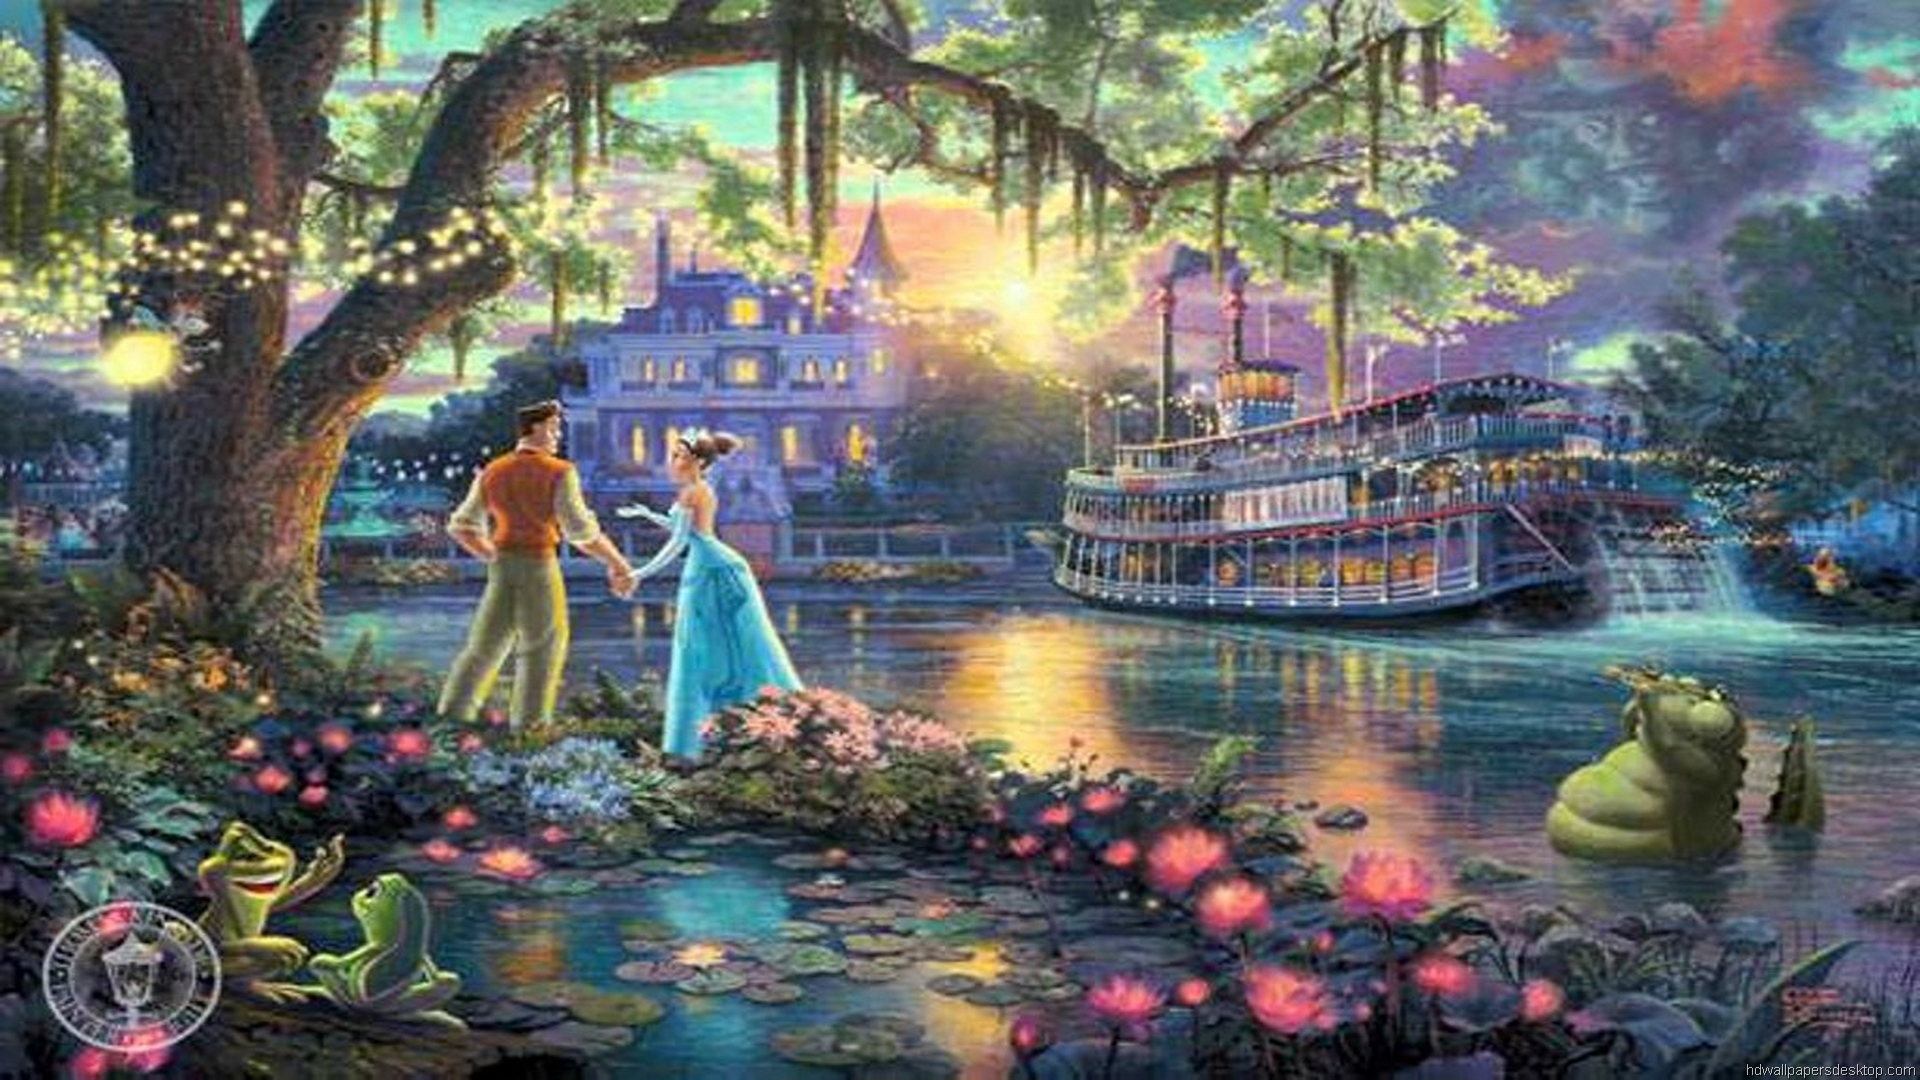 thomas kinkade wallpaper 1920x1080 - photo #5